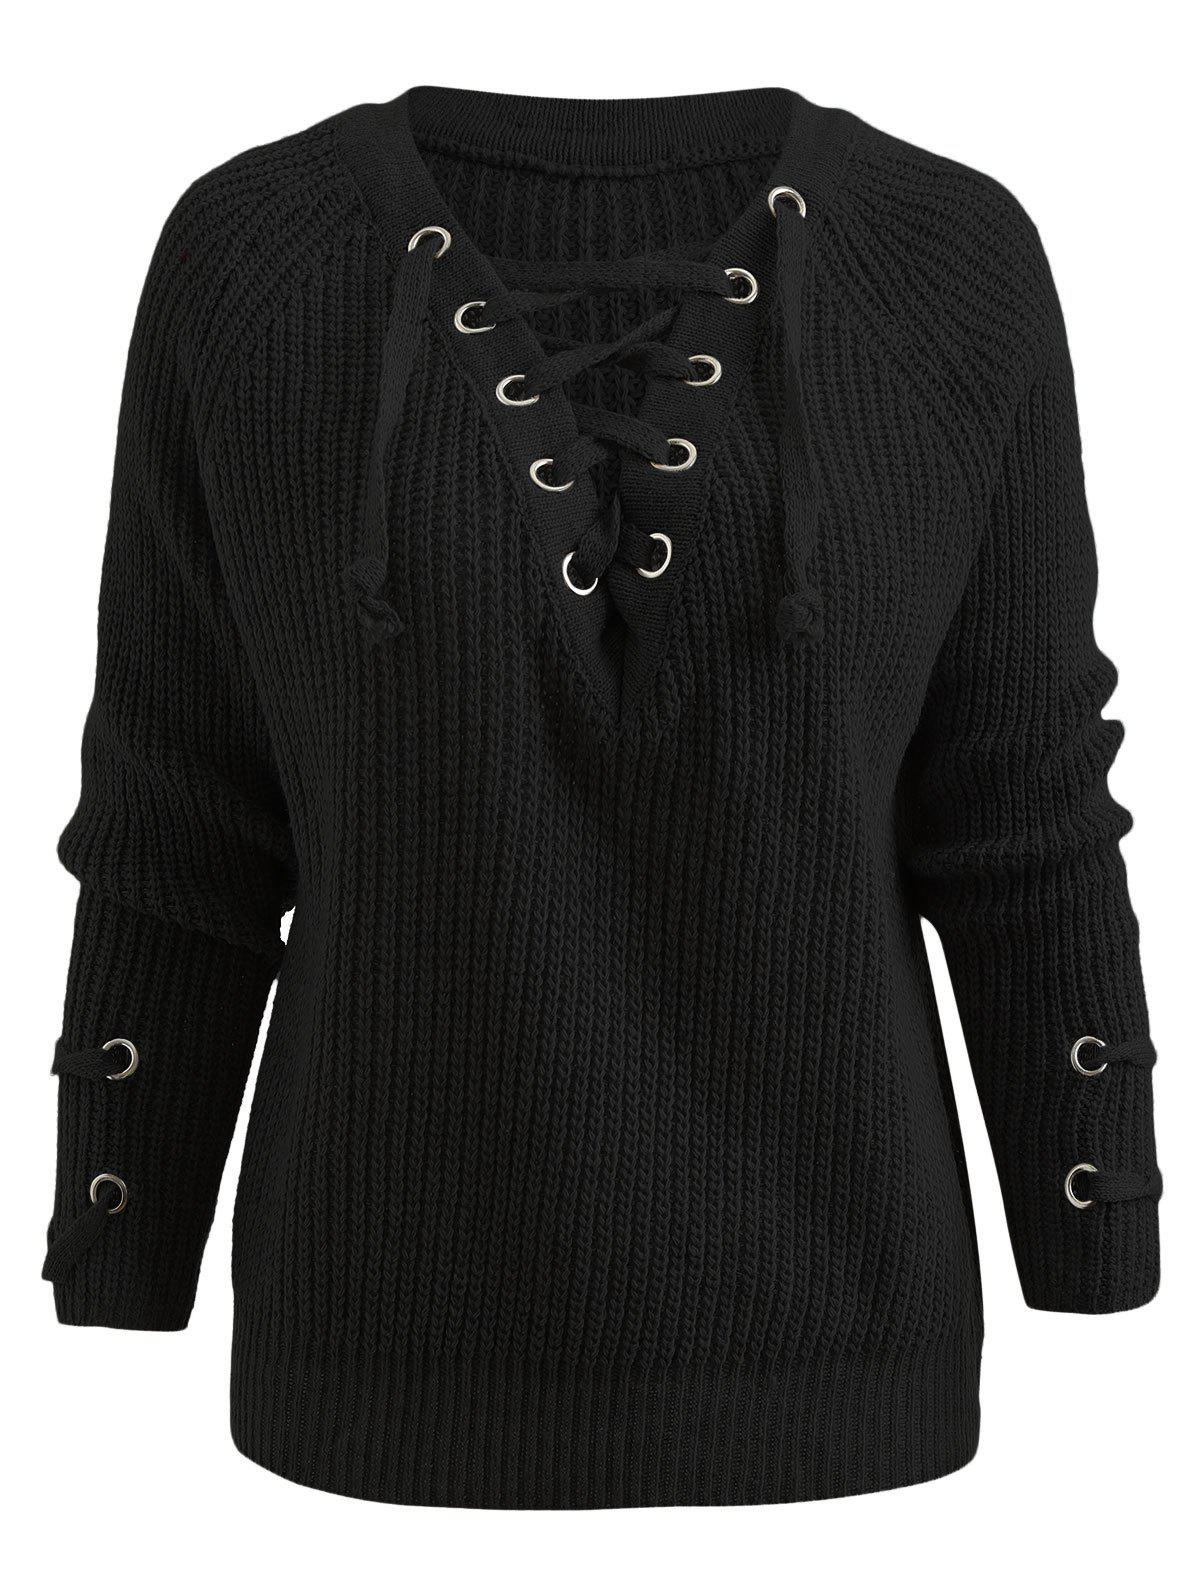 2ba2c7e52c Raglan Sleeve Lace Up Chunky Sweater - One Size